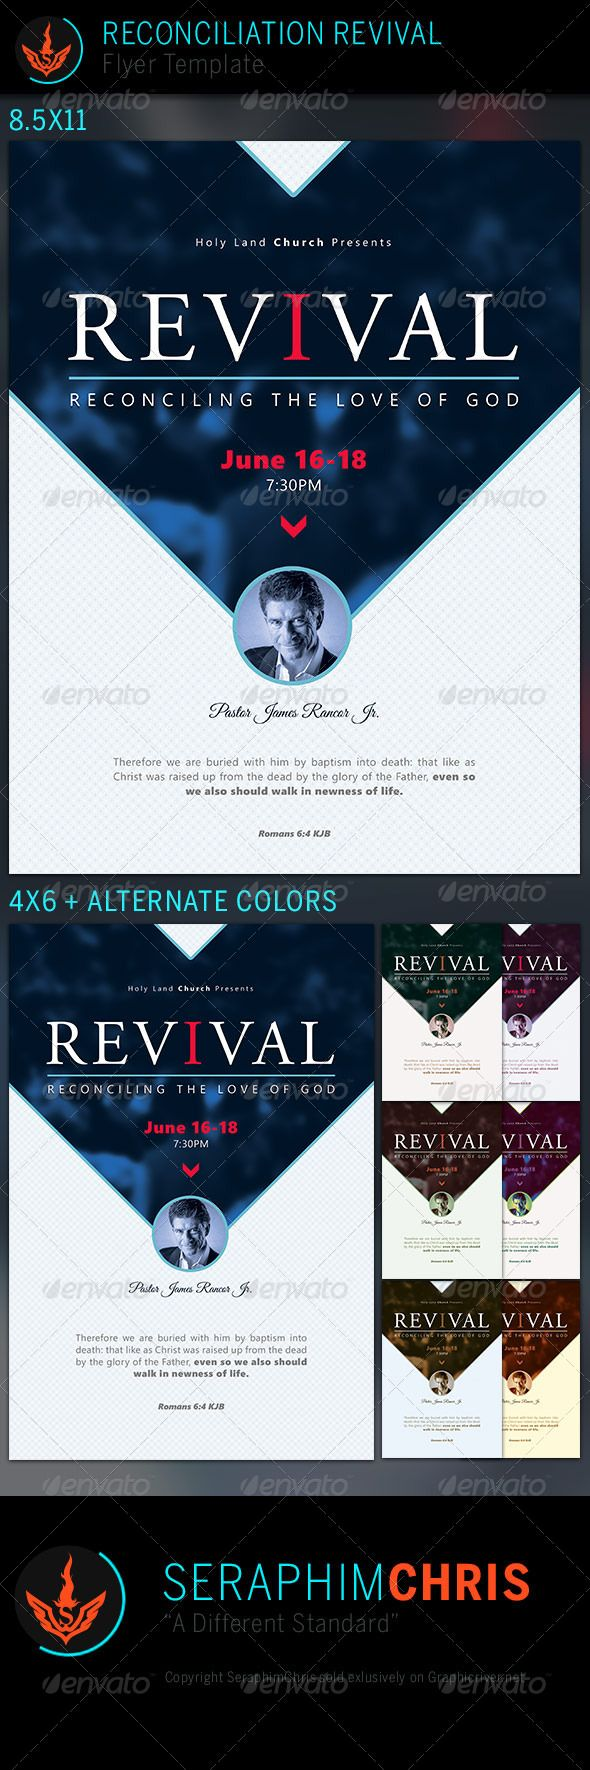 Reconciliation Revival Church Flyer Template Flyer Template - Free church revival flyer template